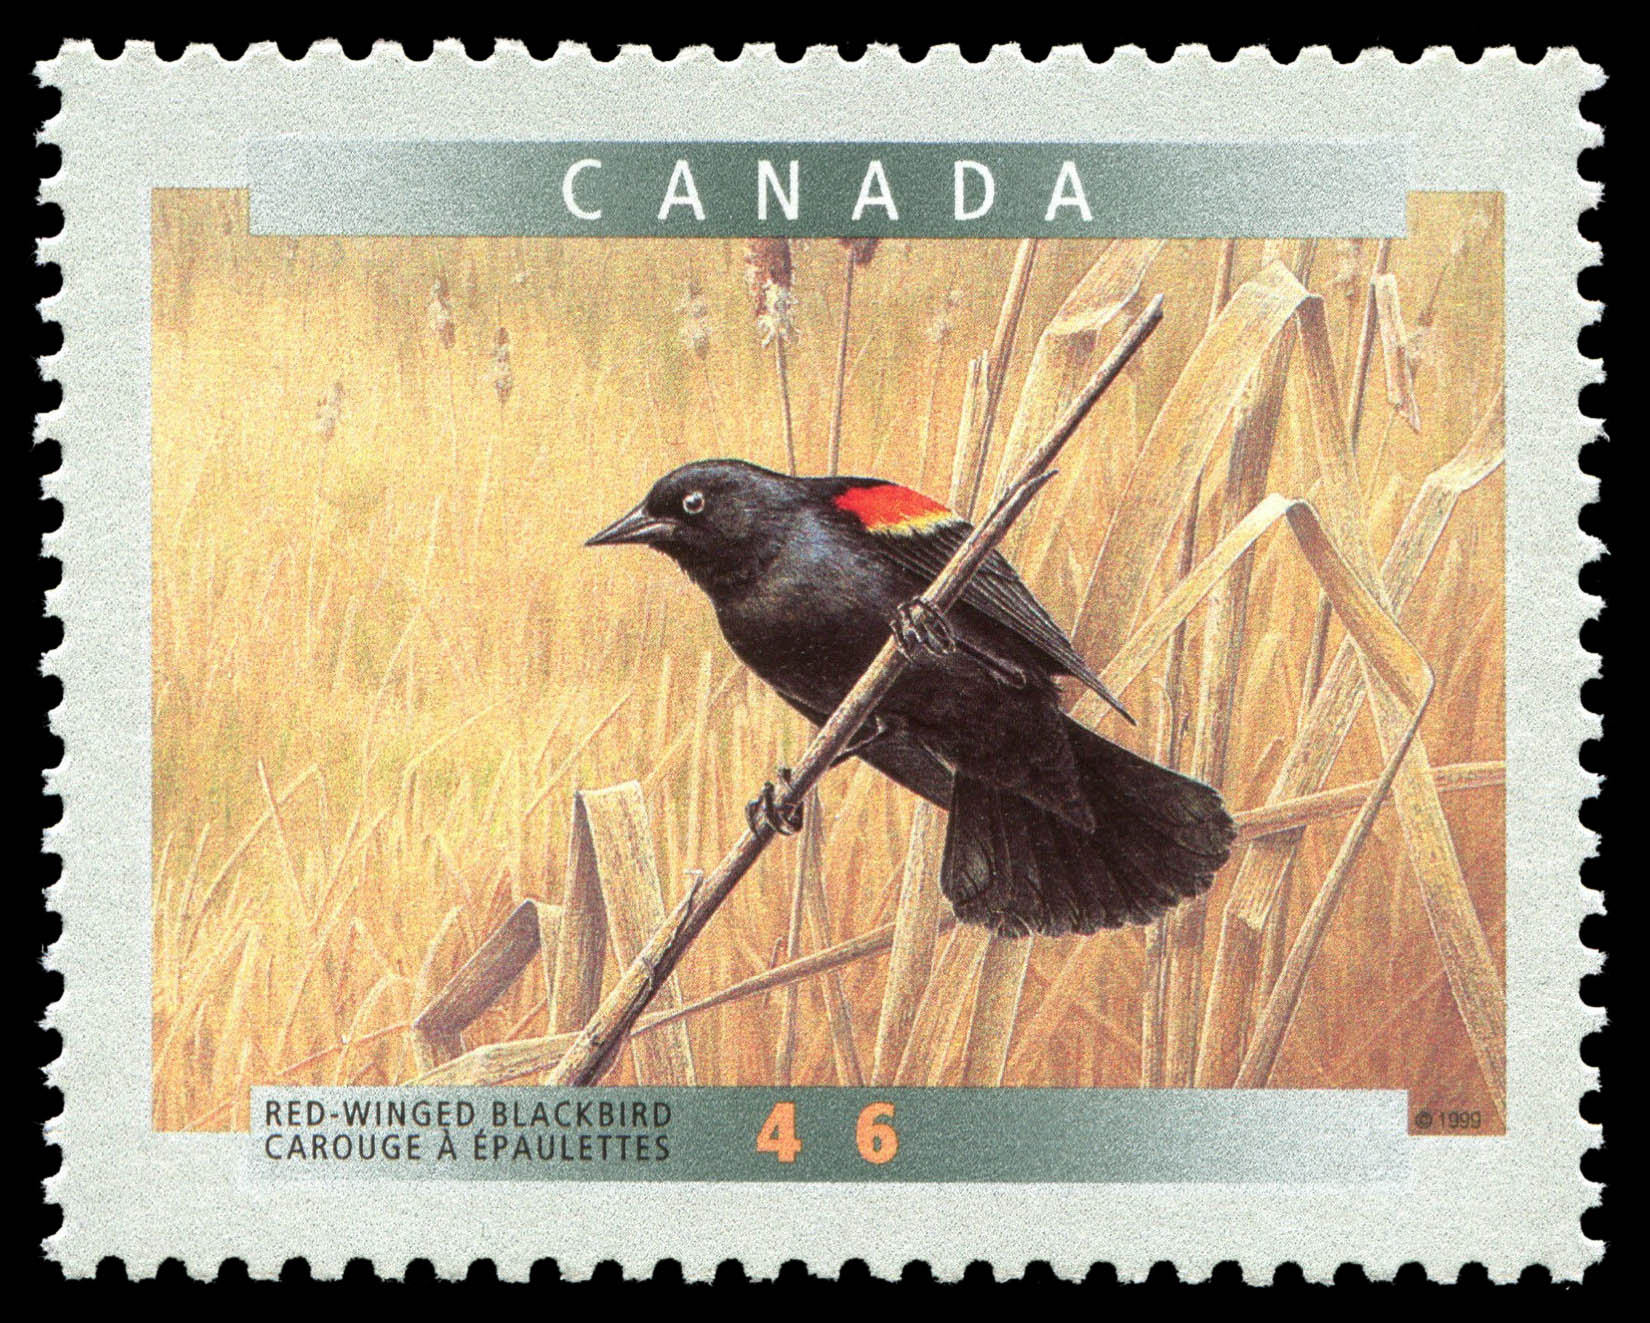 Red-winged Blackbird (Agelaius Phoenicus) Canada Postage Stamp | Birds of Canada